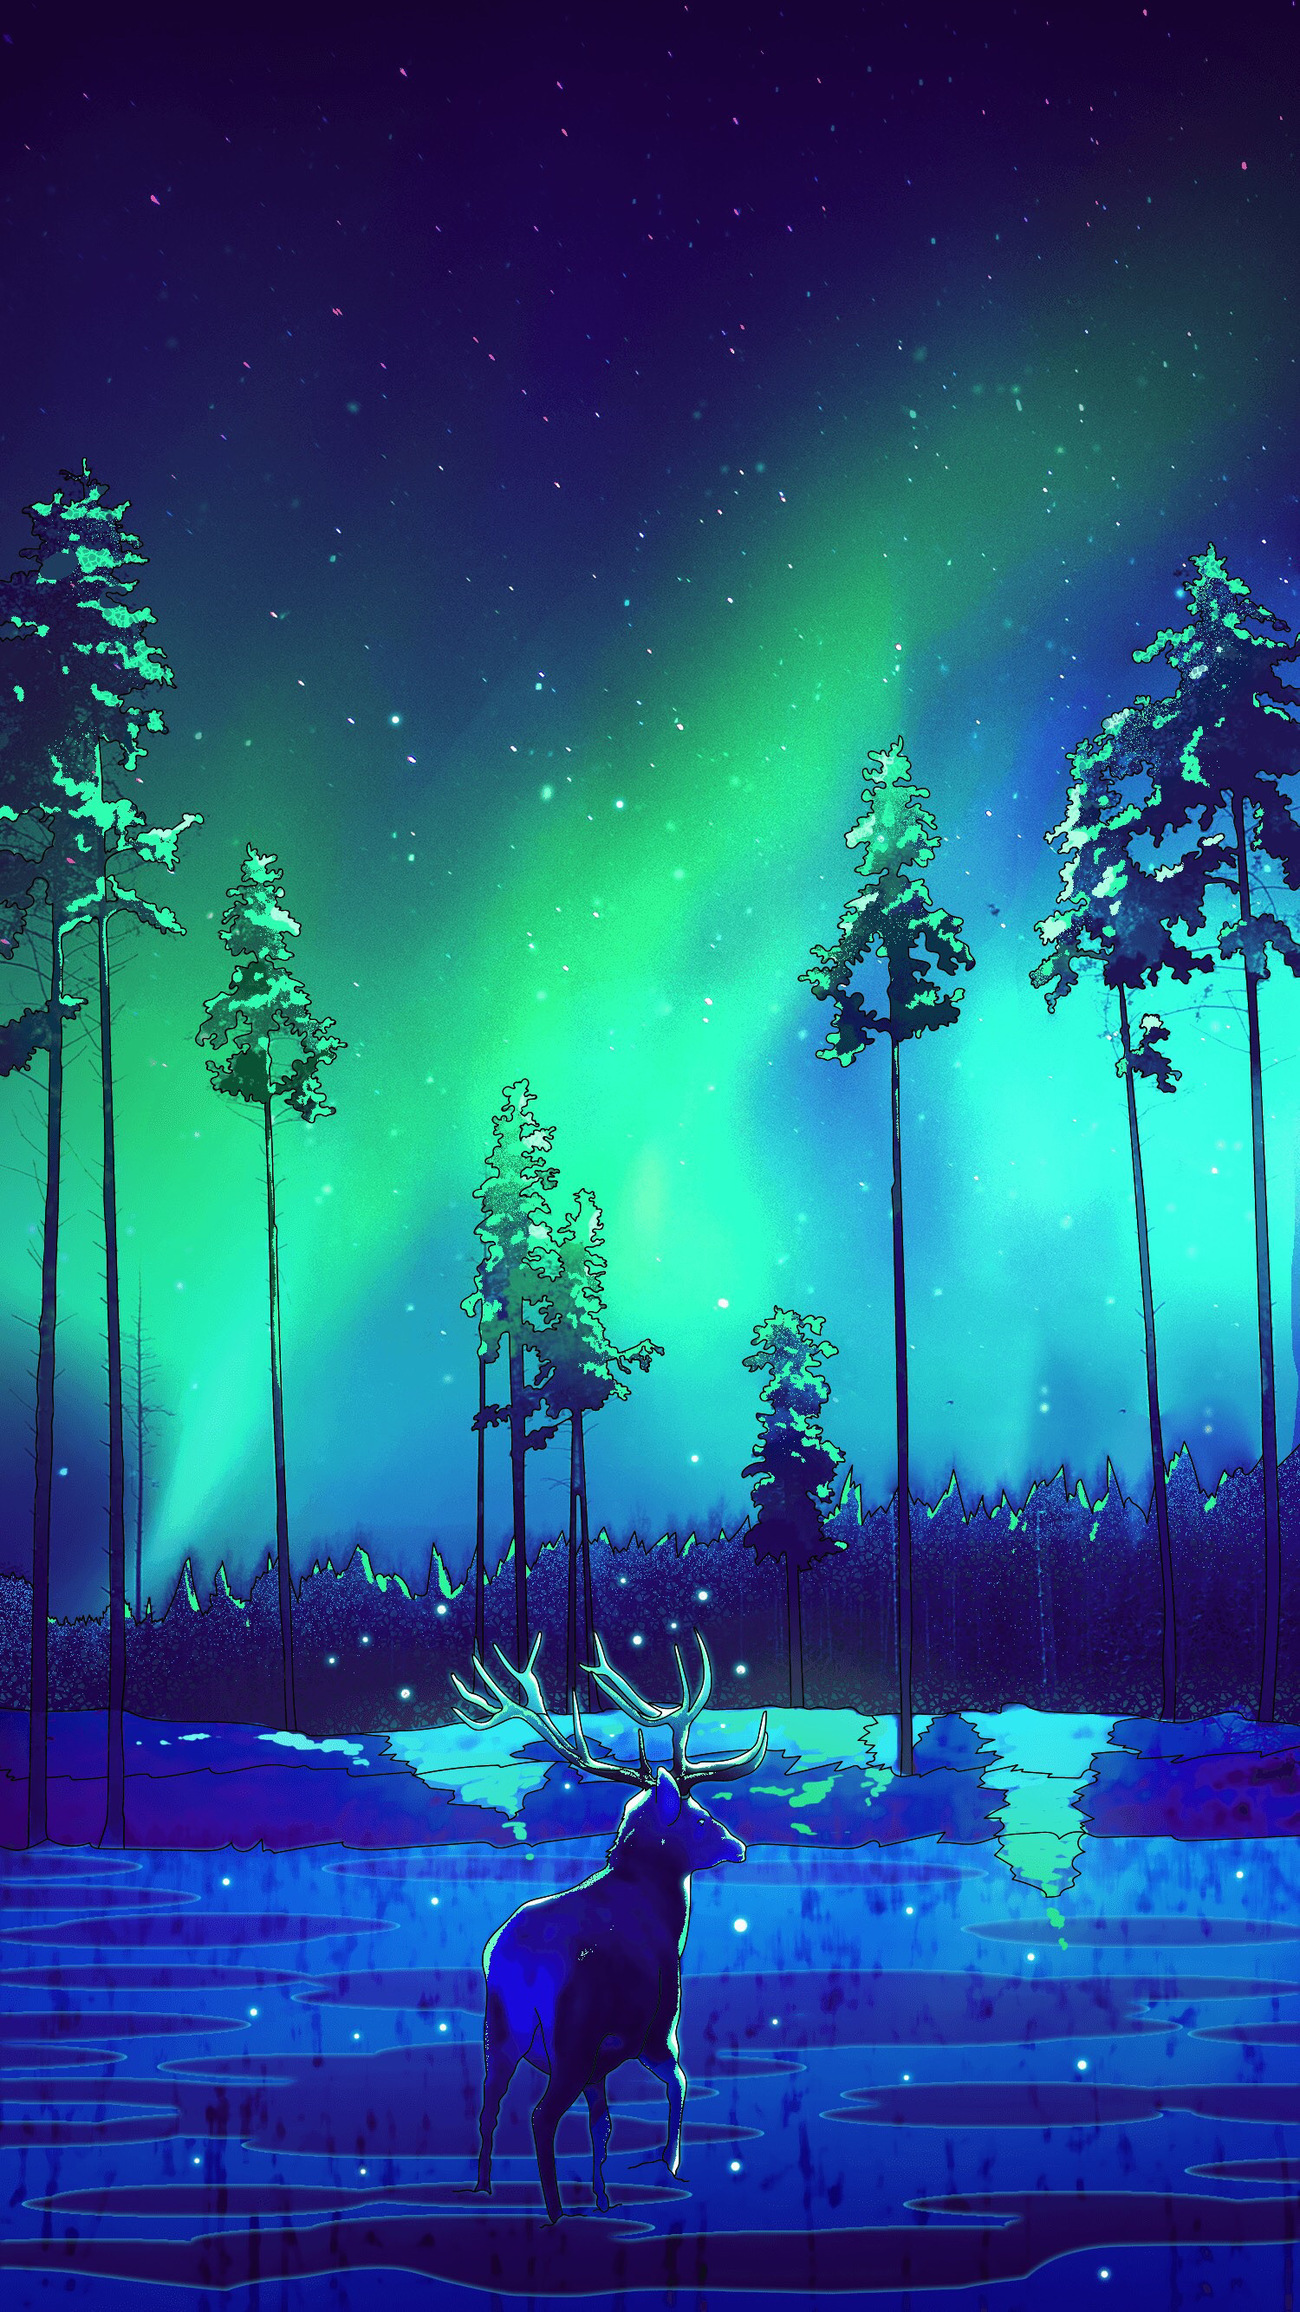 The Northern Lights by Lyne